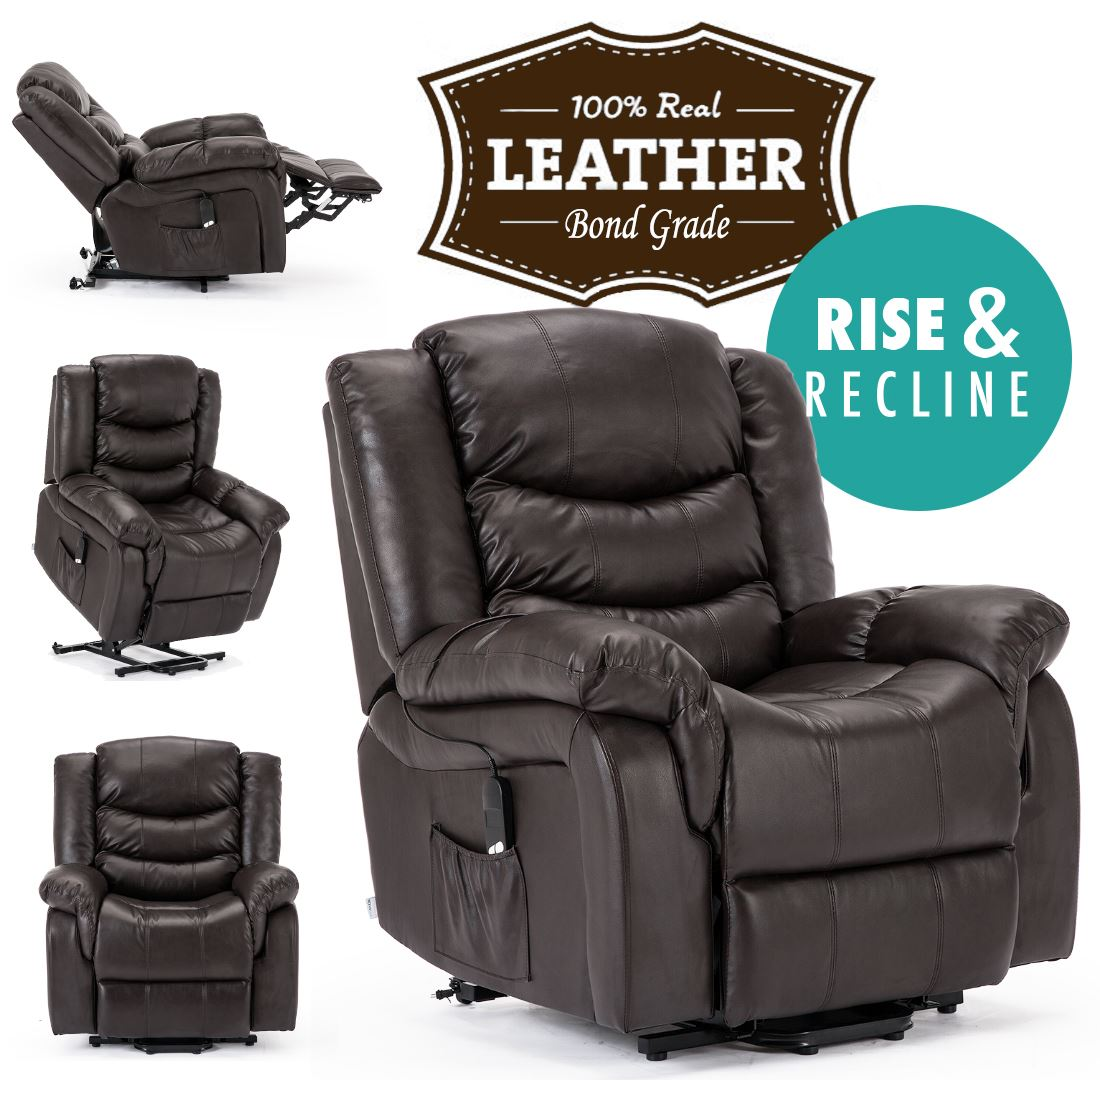 Leather Electric Recliner Sofa Uk: SEATTLE ELECTRIC RISE REAL LEATHER RECLINER ARMCHAIR SOFA